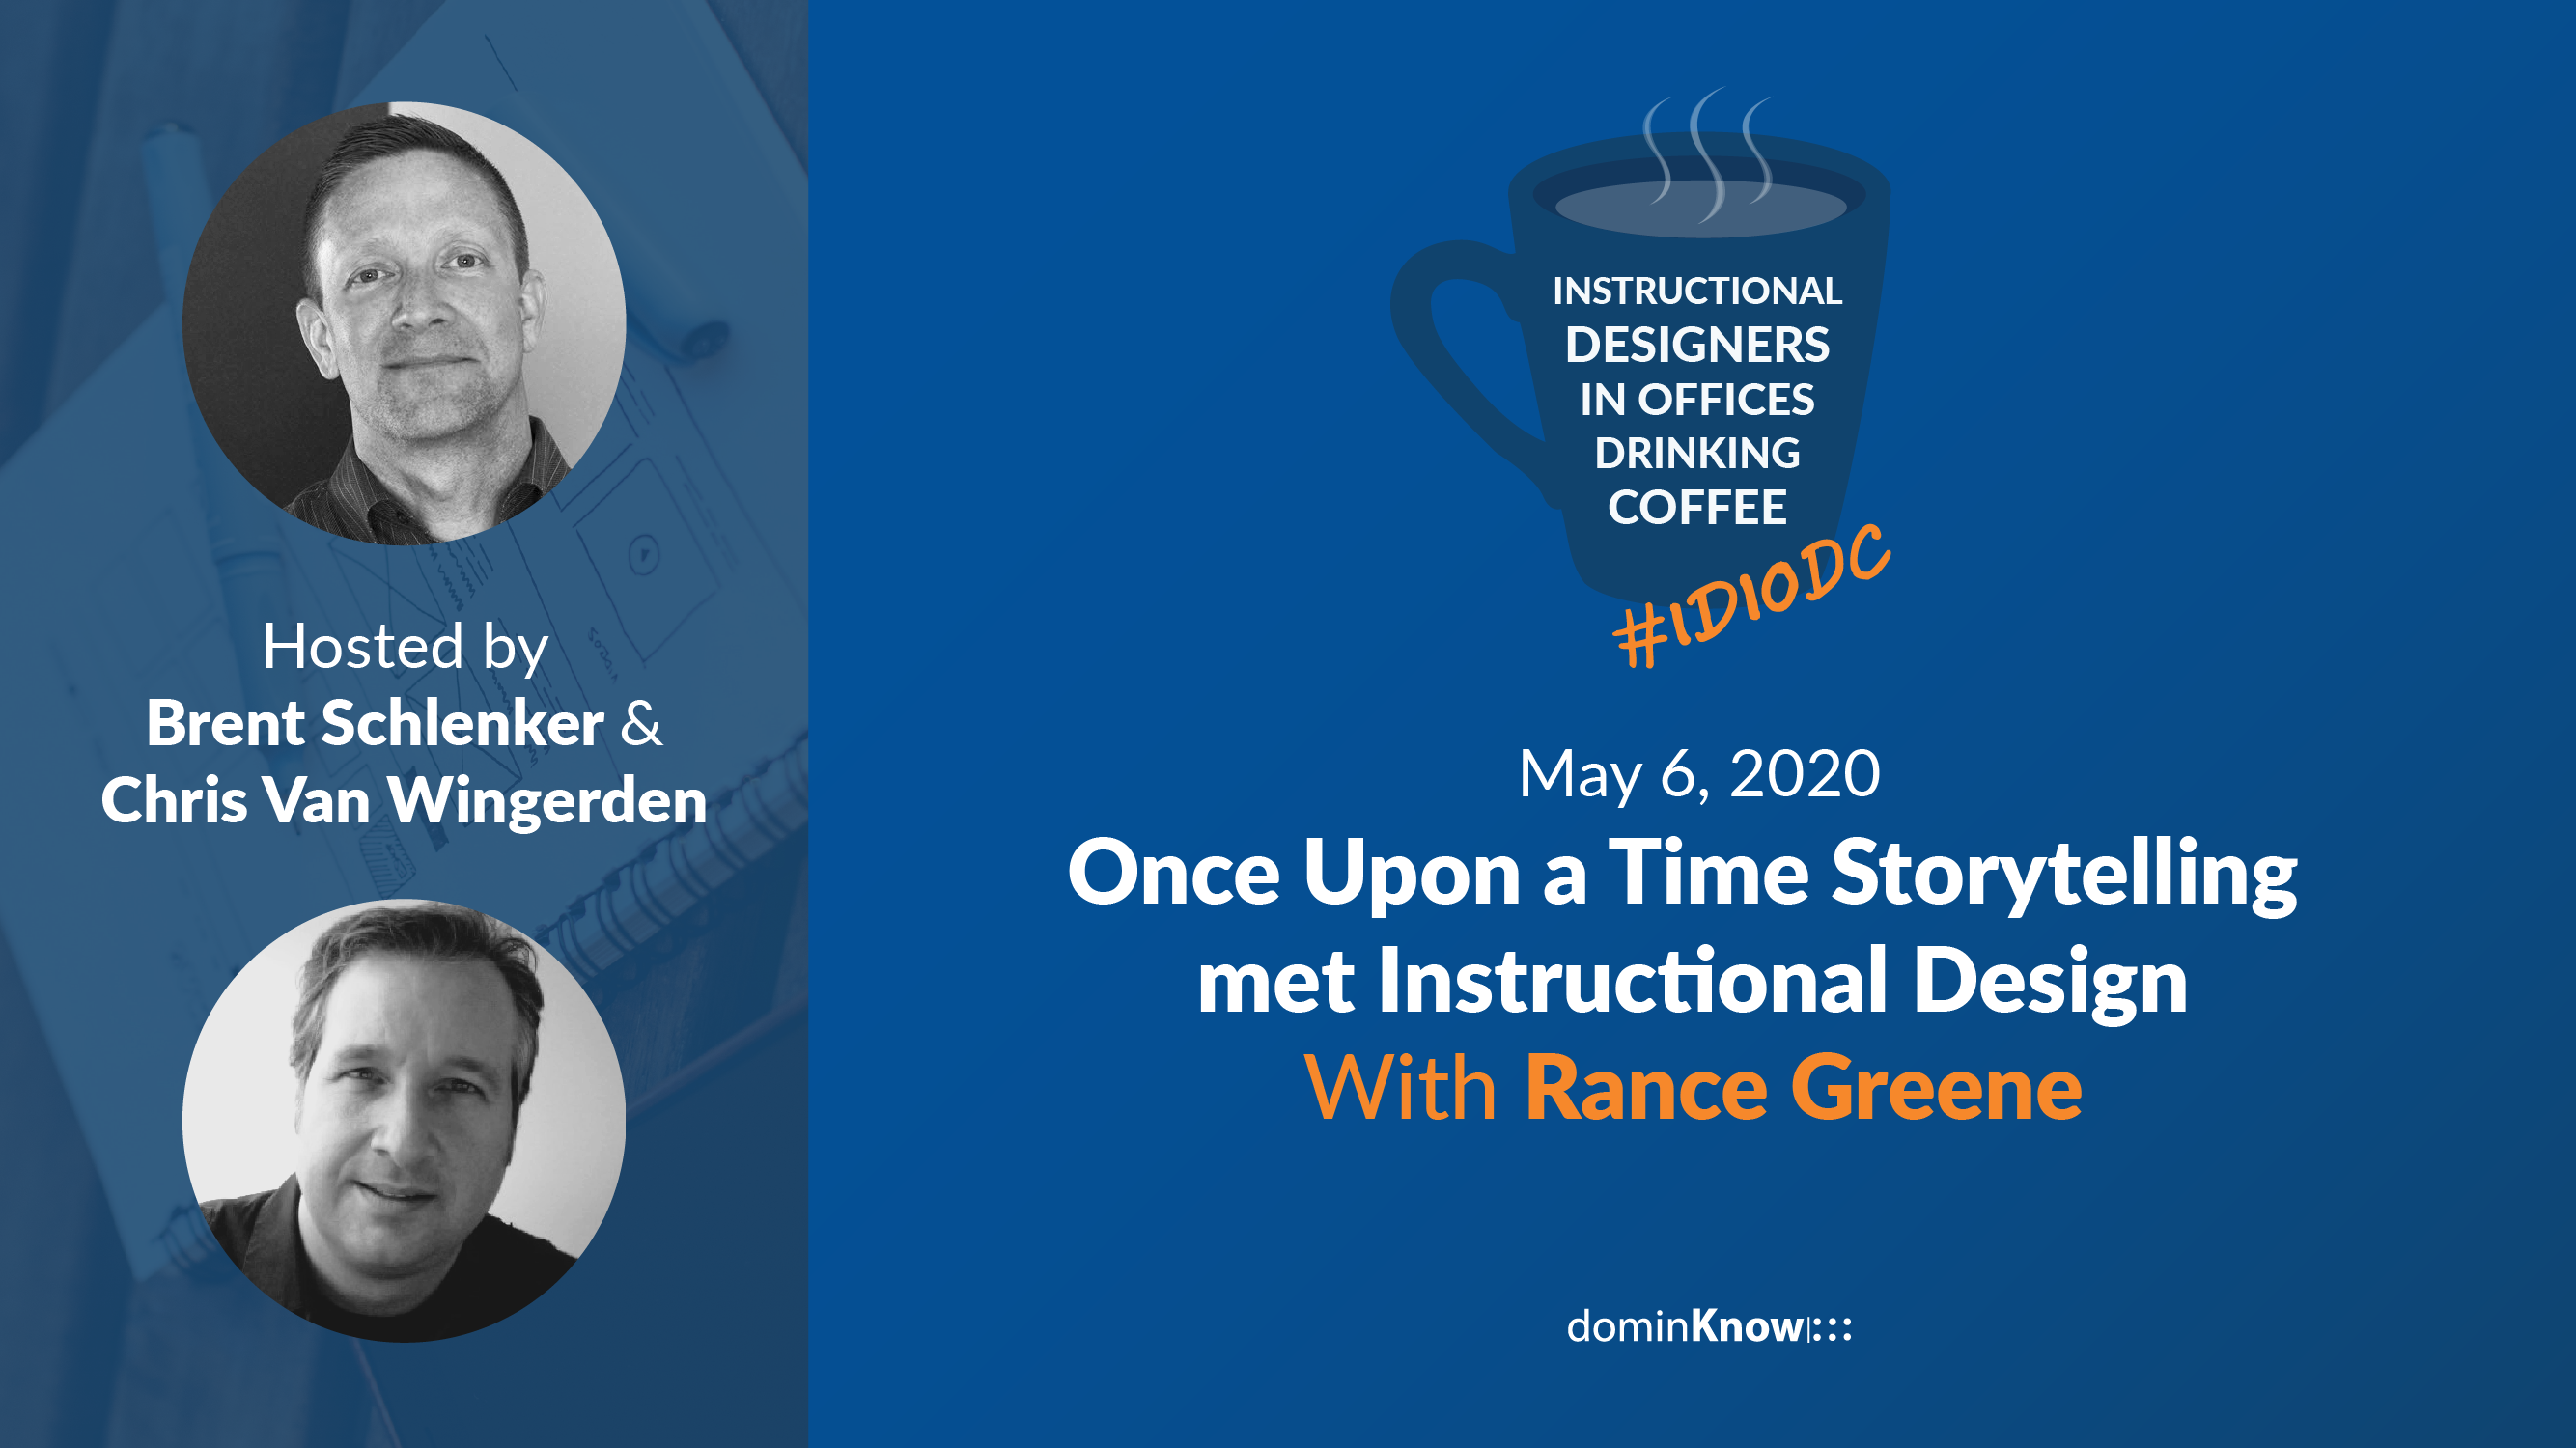 Rance Greene joins us on an episode of IDIODC to talk about the amazing things storytelling in L&D can do for you.